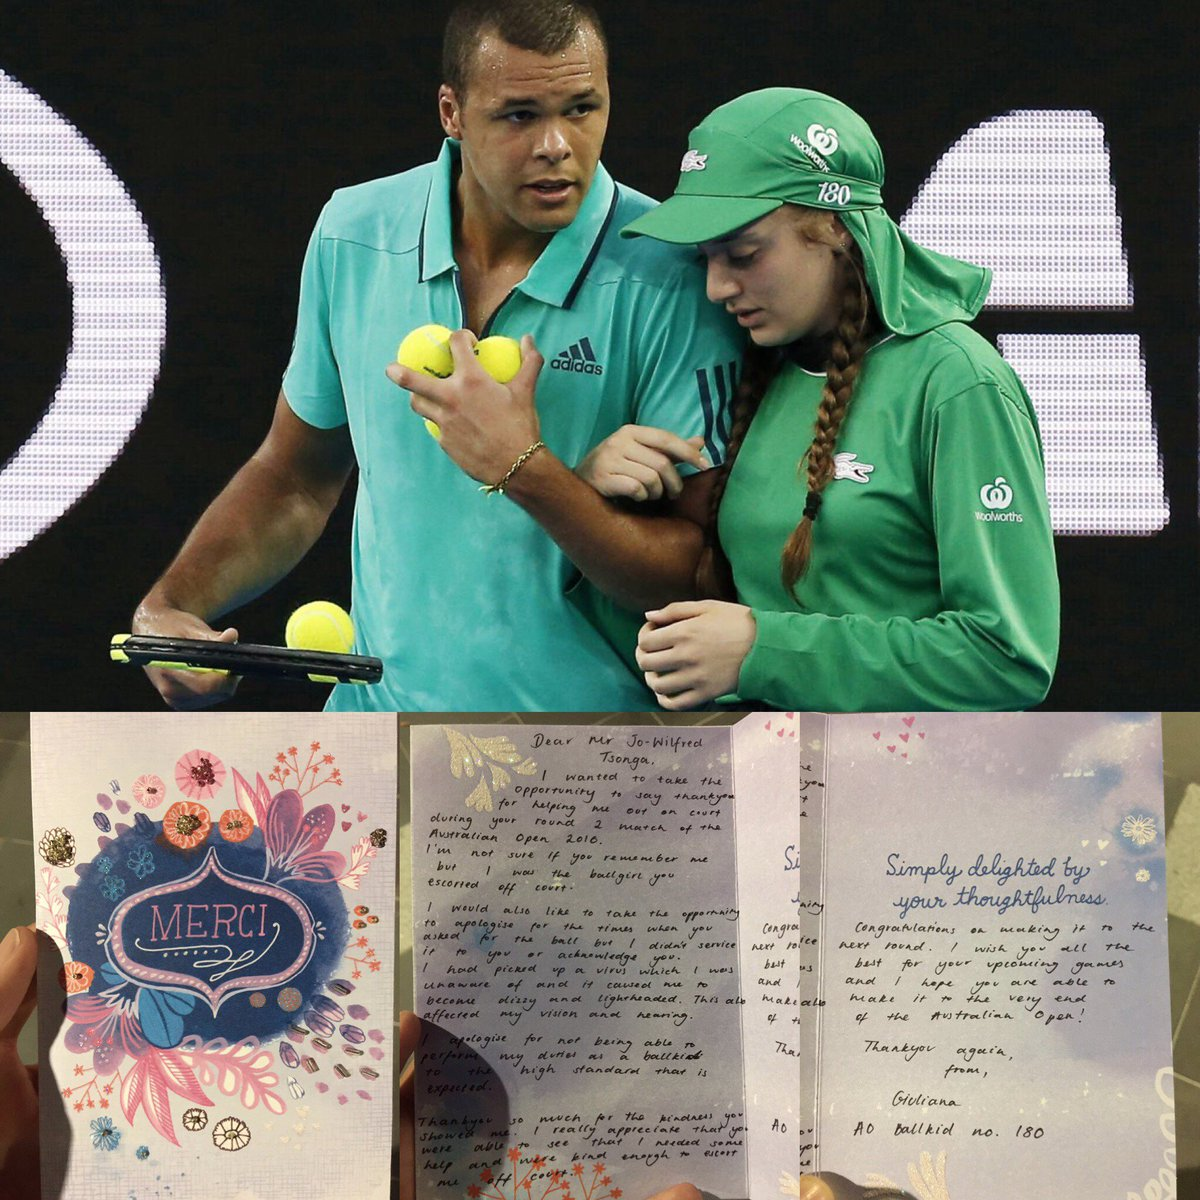 Thank you very much for your letter Giuliana !!!